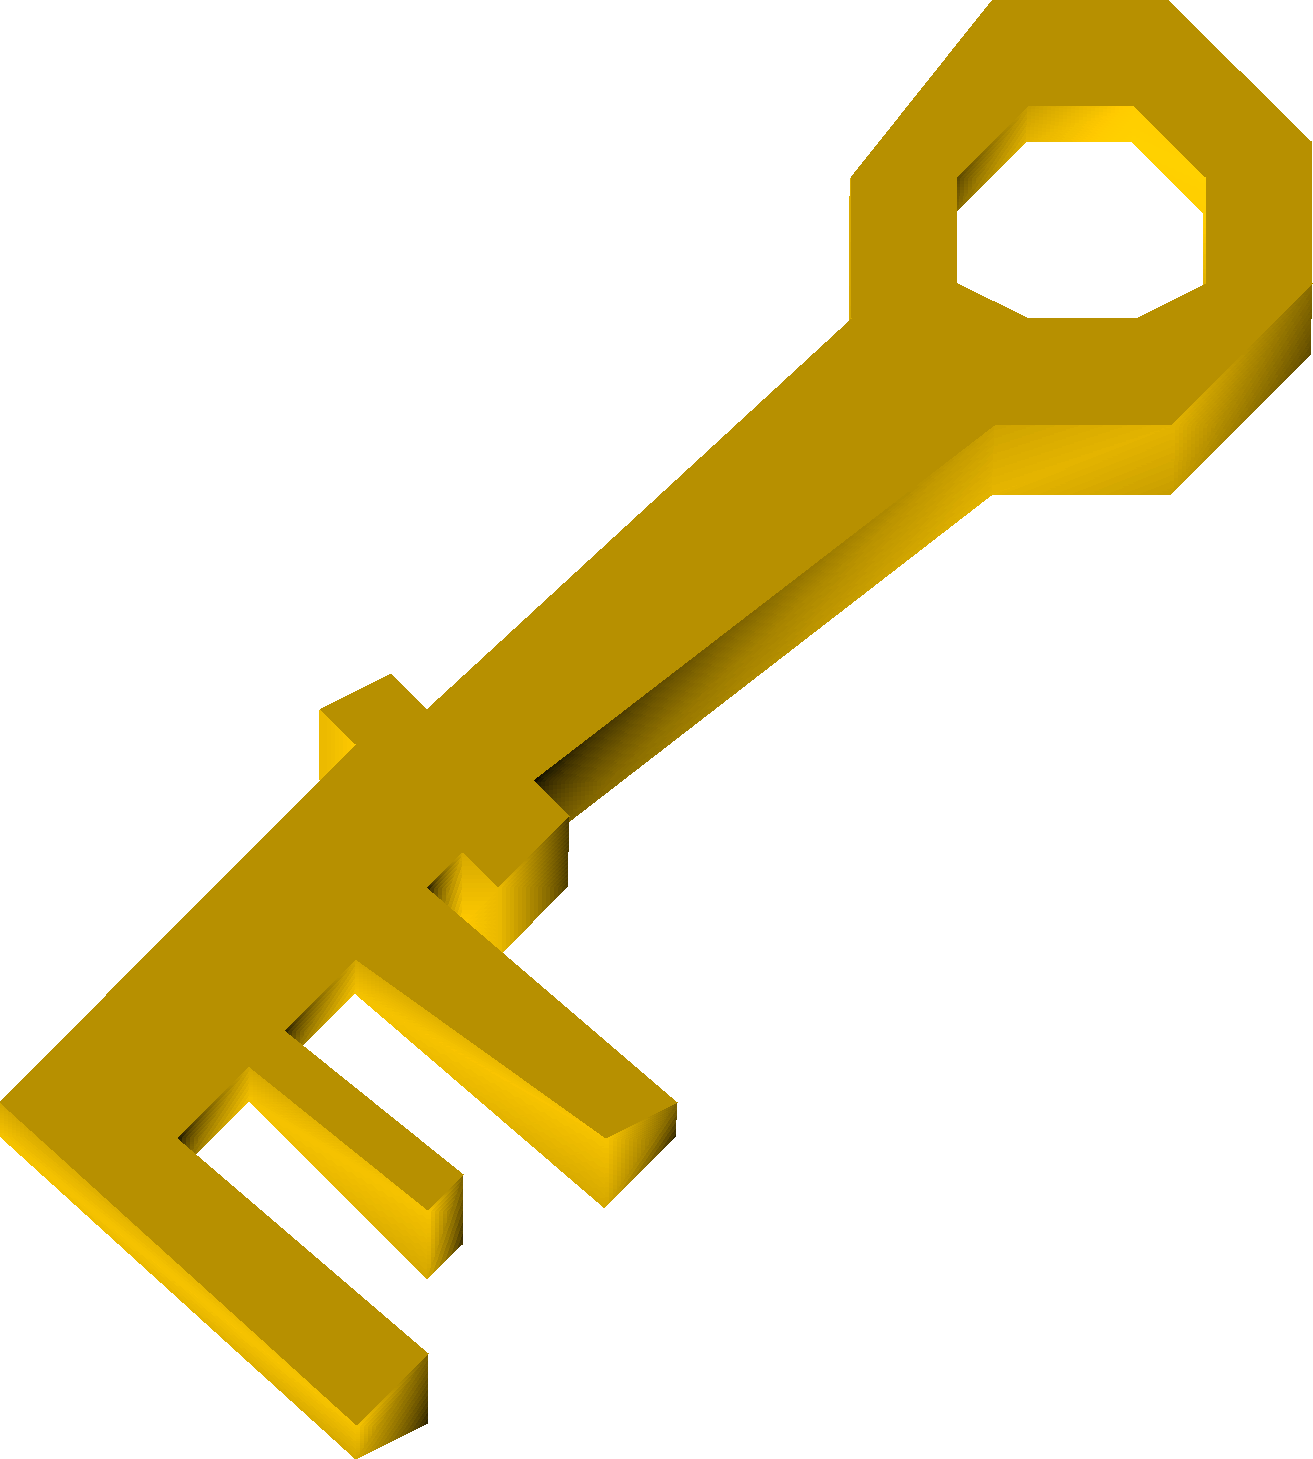 File:Keys detail.png